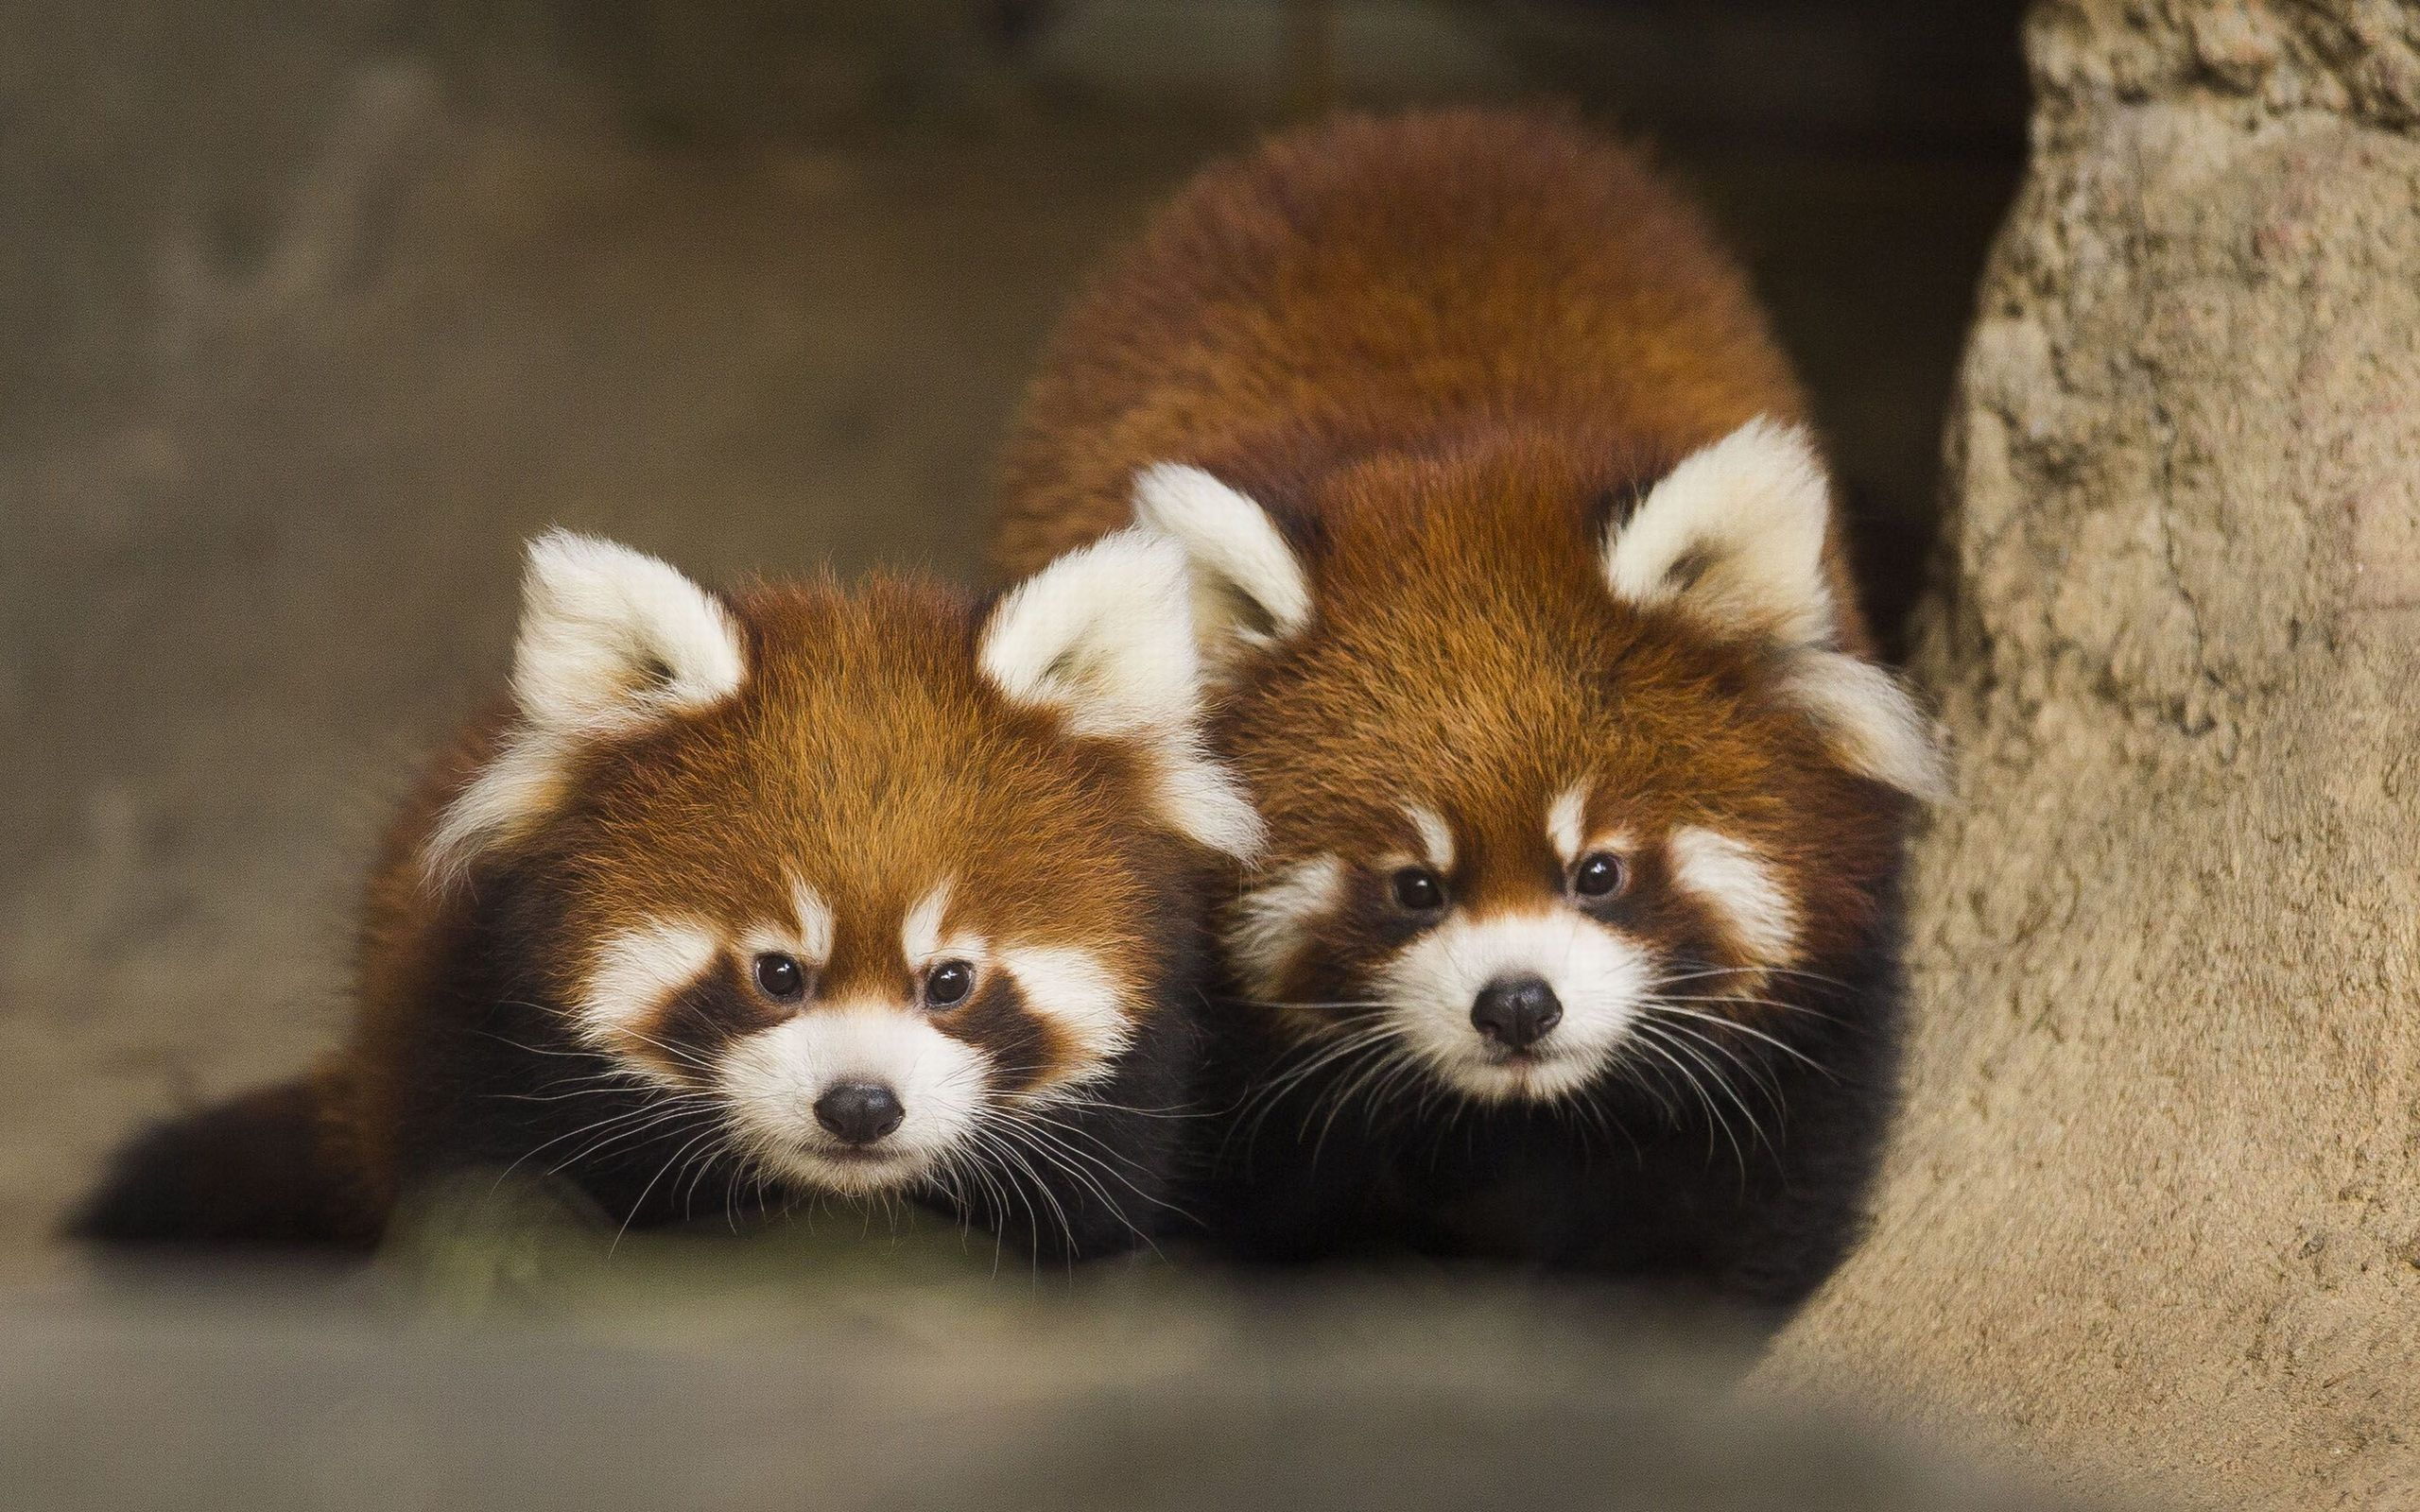 Animals Zoo Park Cute Dogs Wallpapers For Desktop Cute: Cute Red Panda Wallpaper HD For Desktop Of Cute Animal